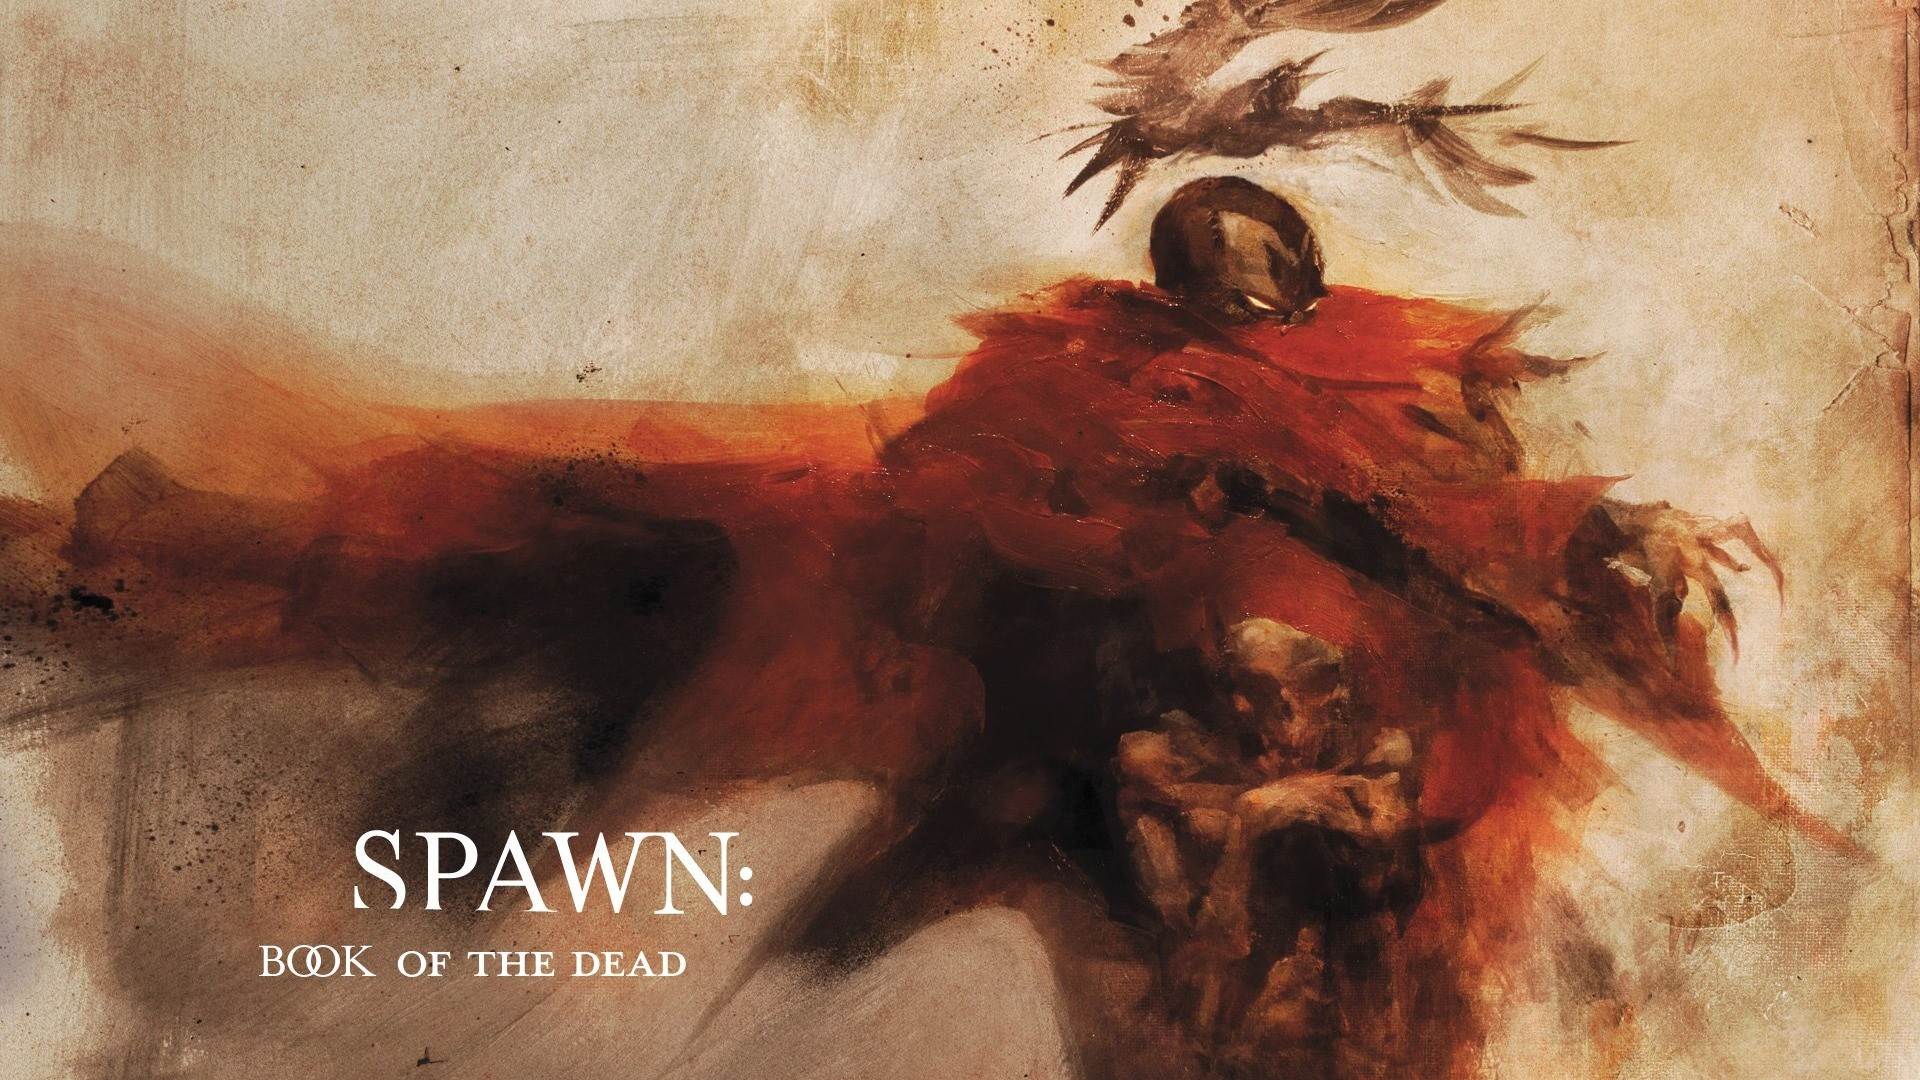 Spawn HD Wallpapers #2 – 1920×1080.